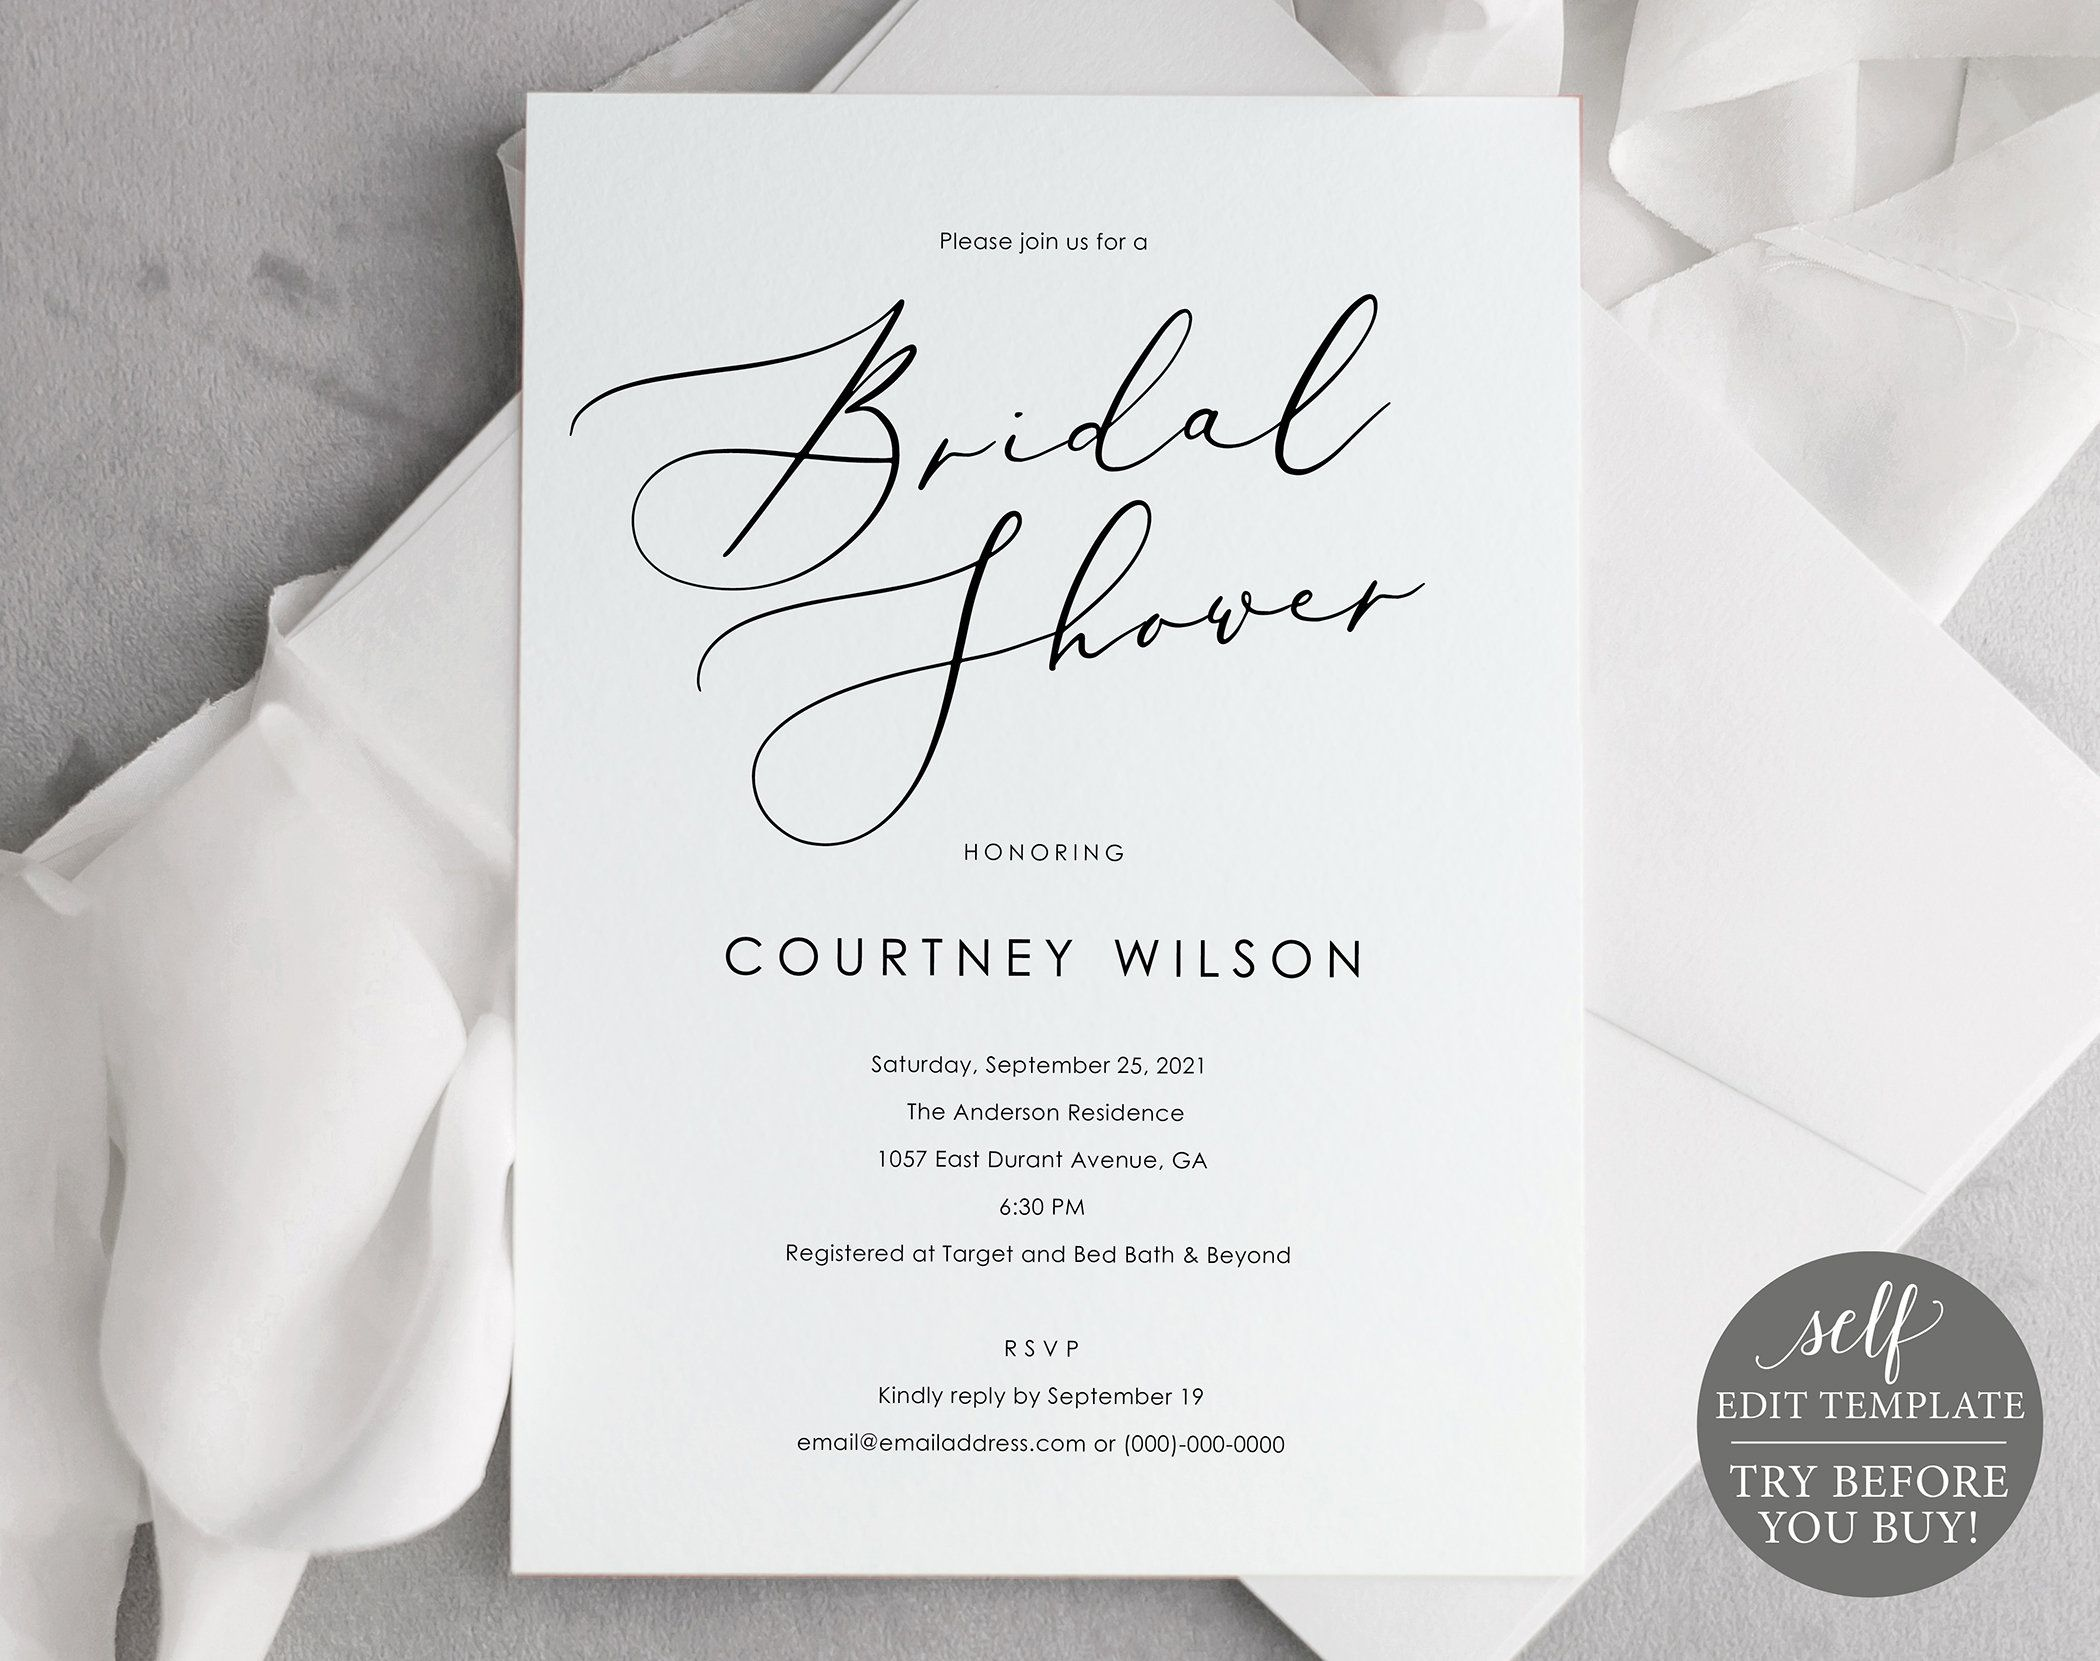 Bridal Shower Invitation Template Calligraphy Try Before You Etsy Bridal Shower Invitations Templates Bridal Shower Invitations Wedding Invitations Printable Templates